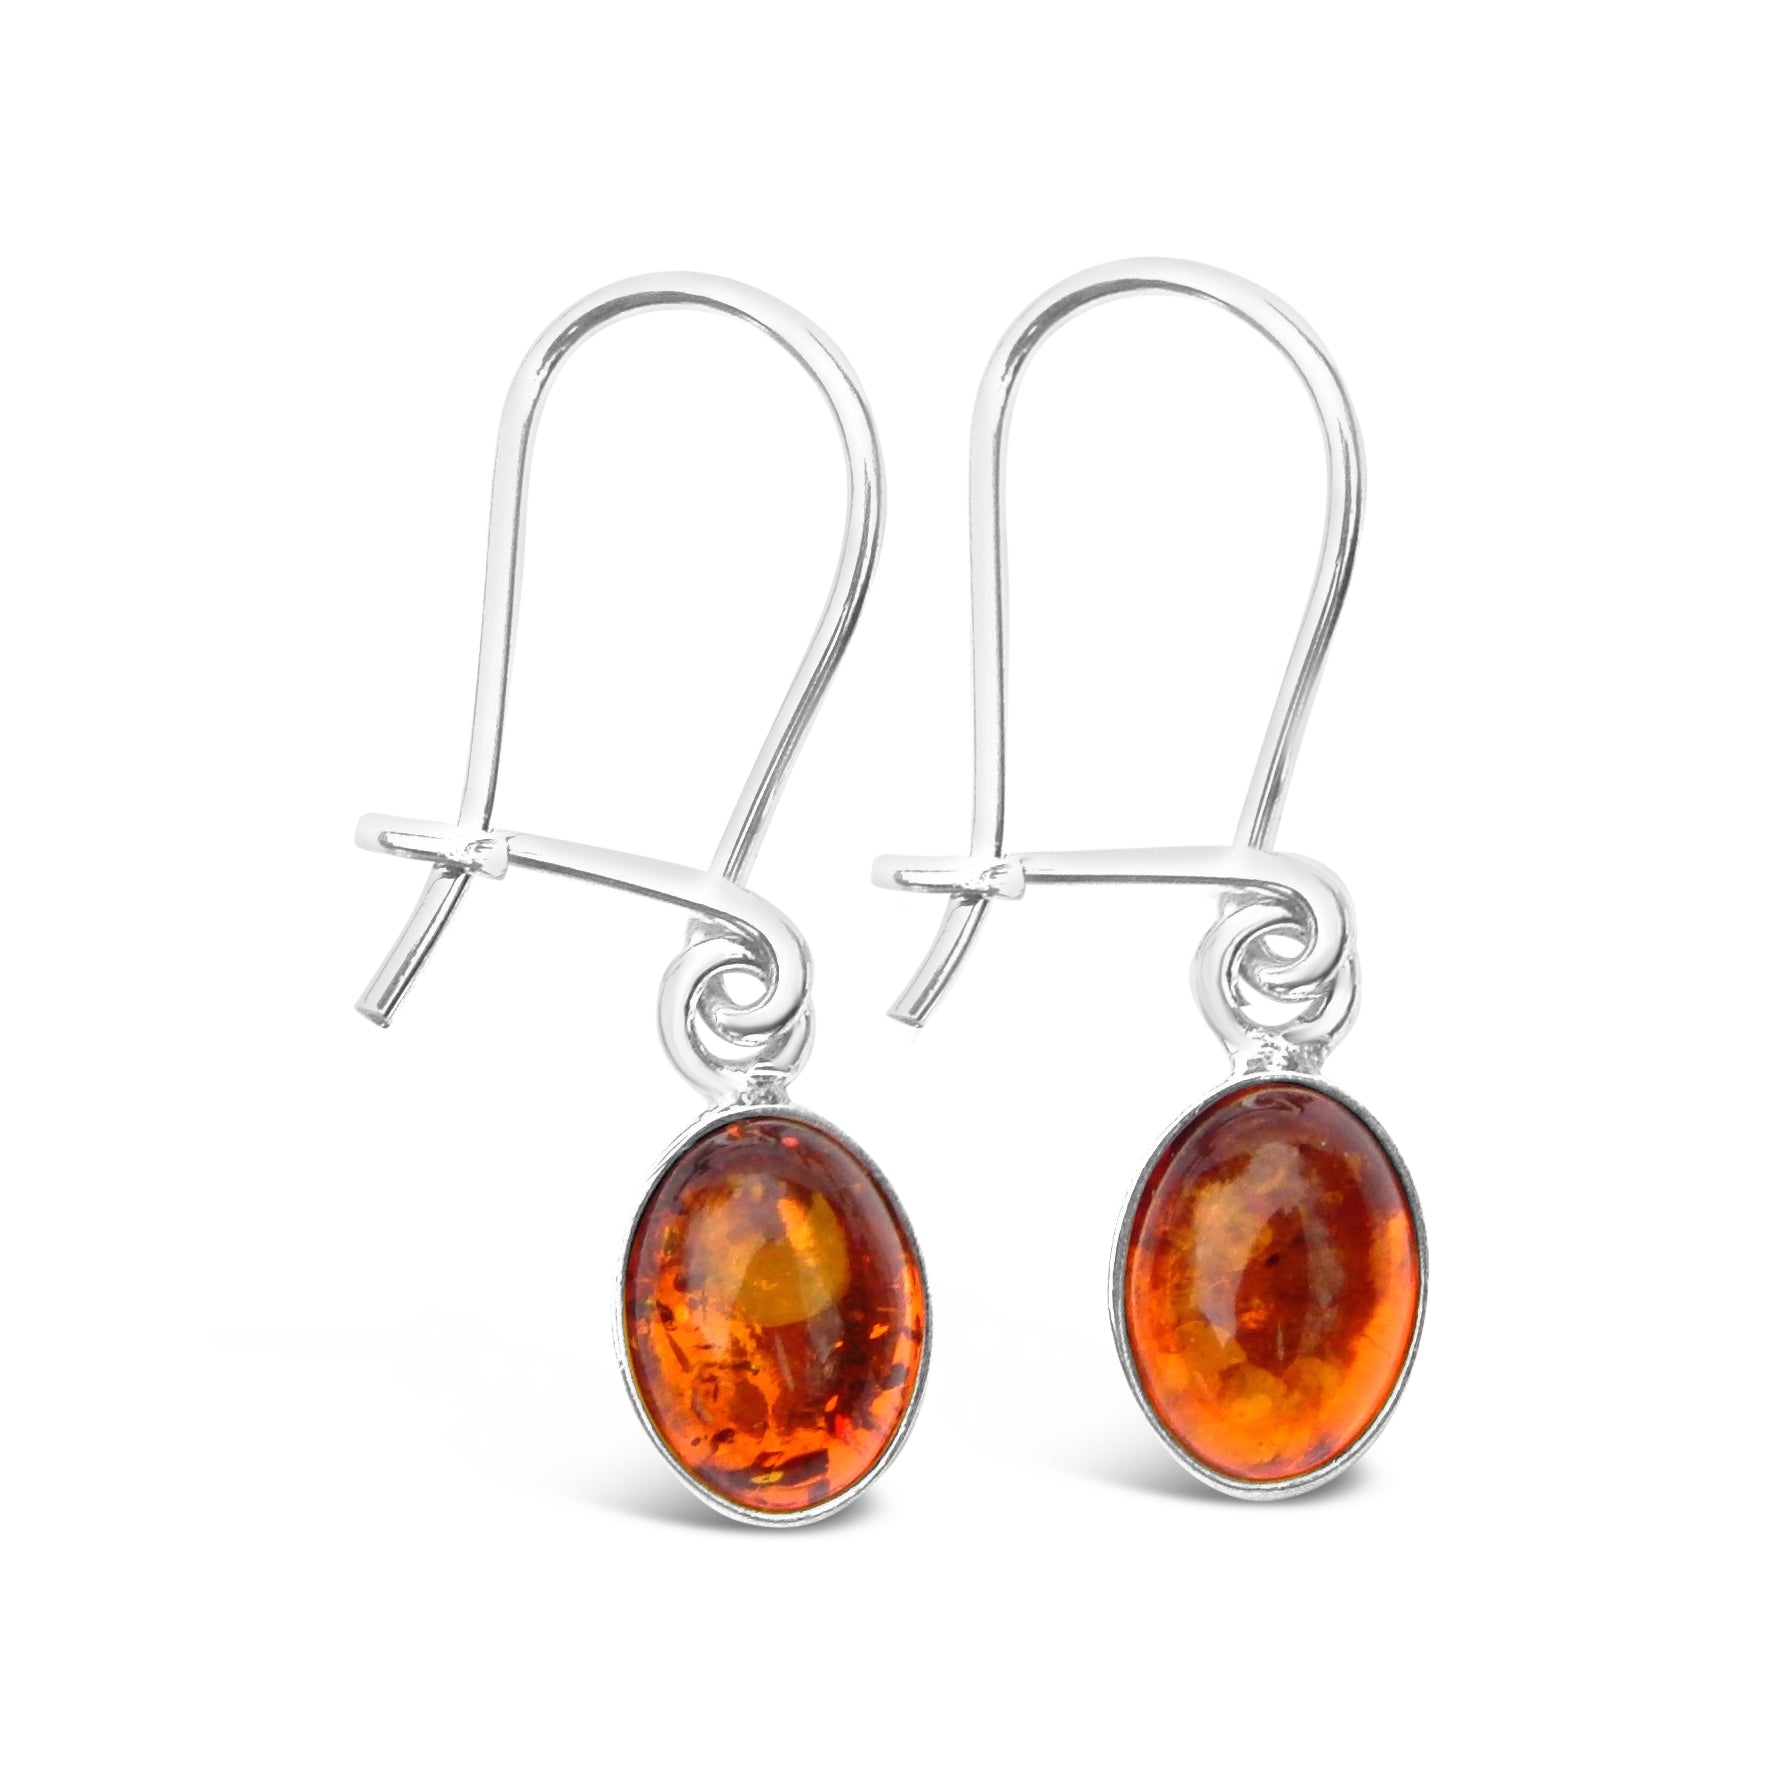 Sterling Silver Dainty Amber Oval Earrings